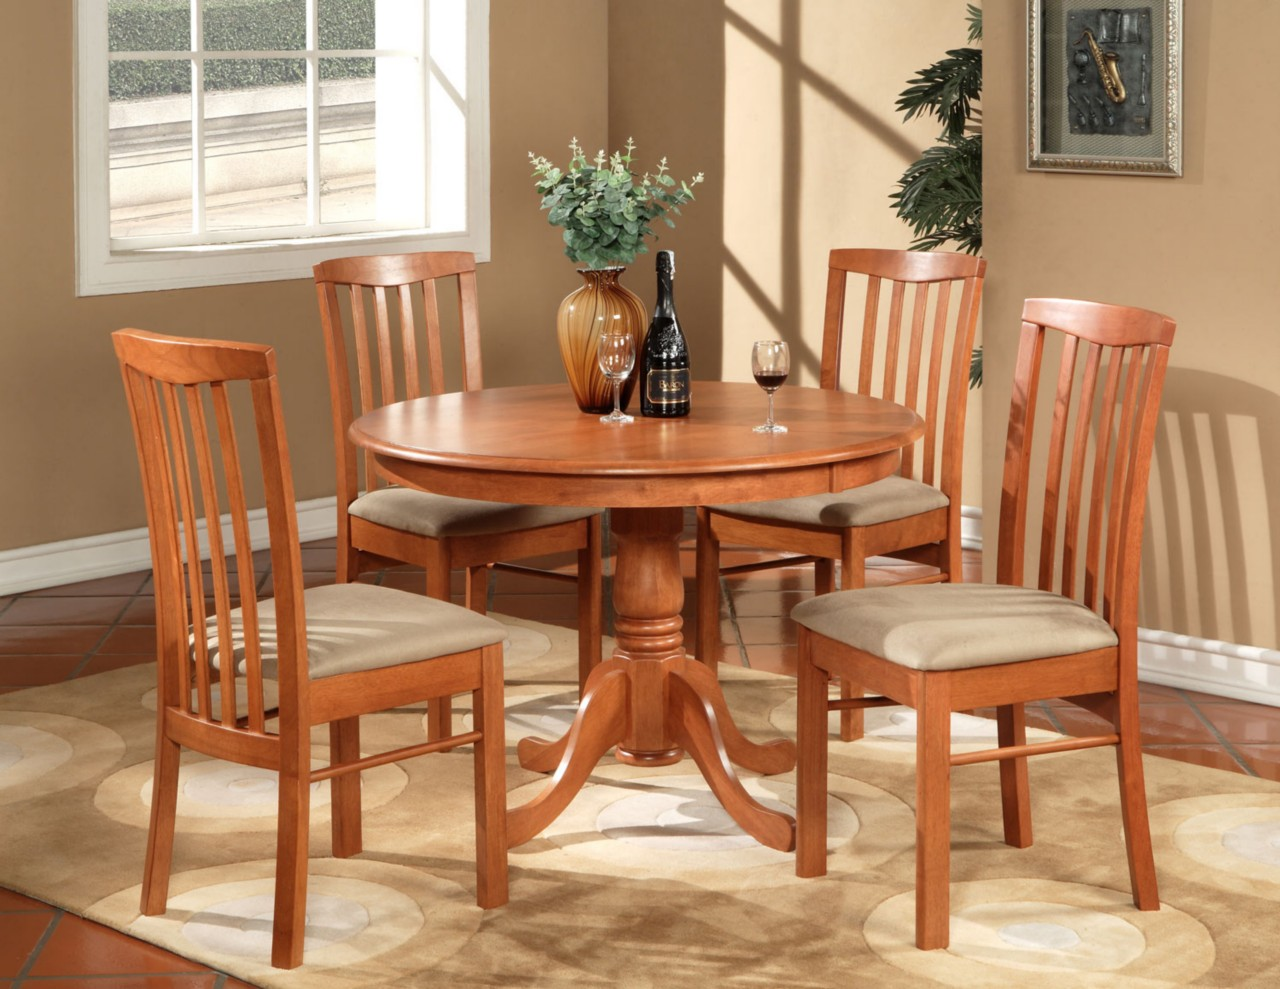 Round Kitchen Table And Chairs Set 5pc Hartland Round Dinette Kitchen Table Set With 4